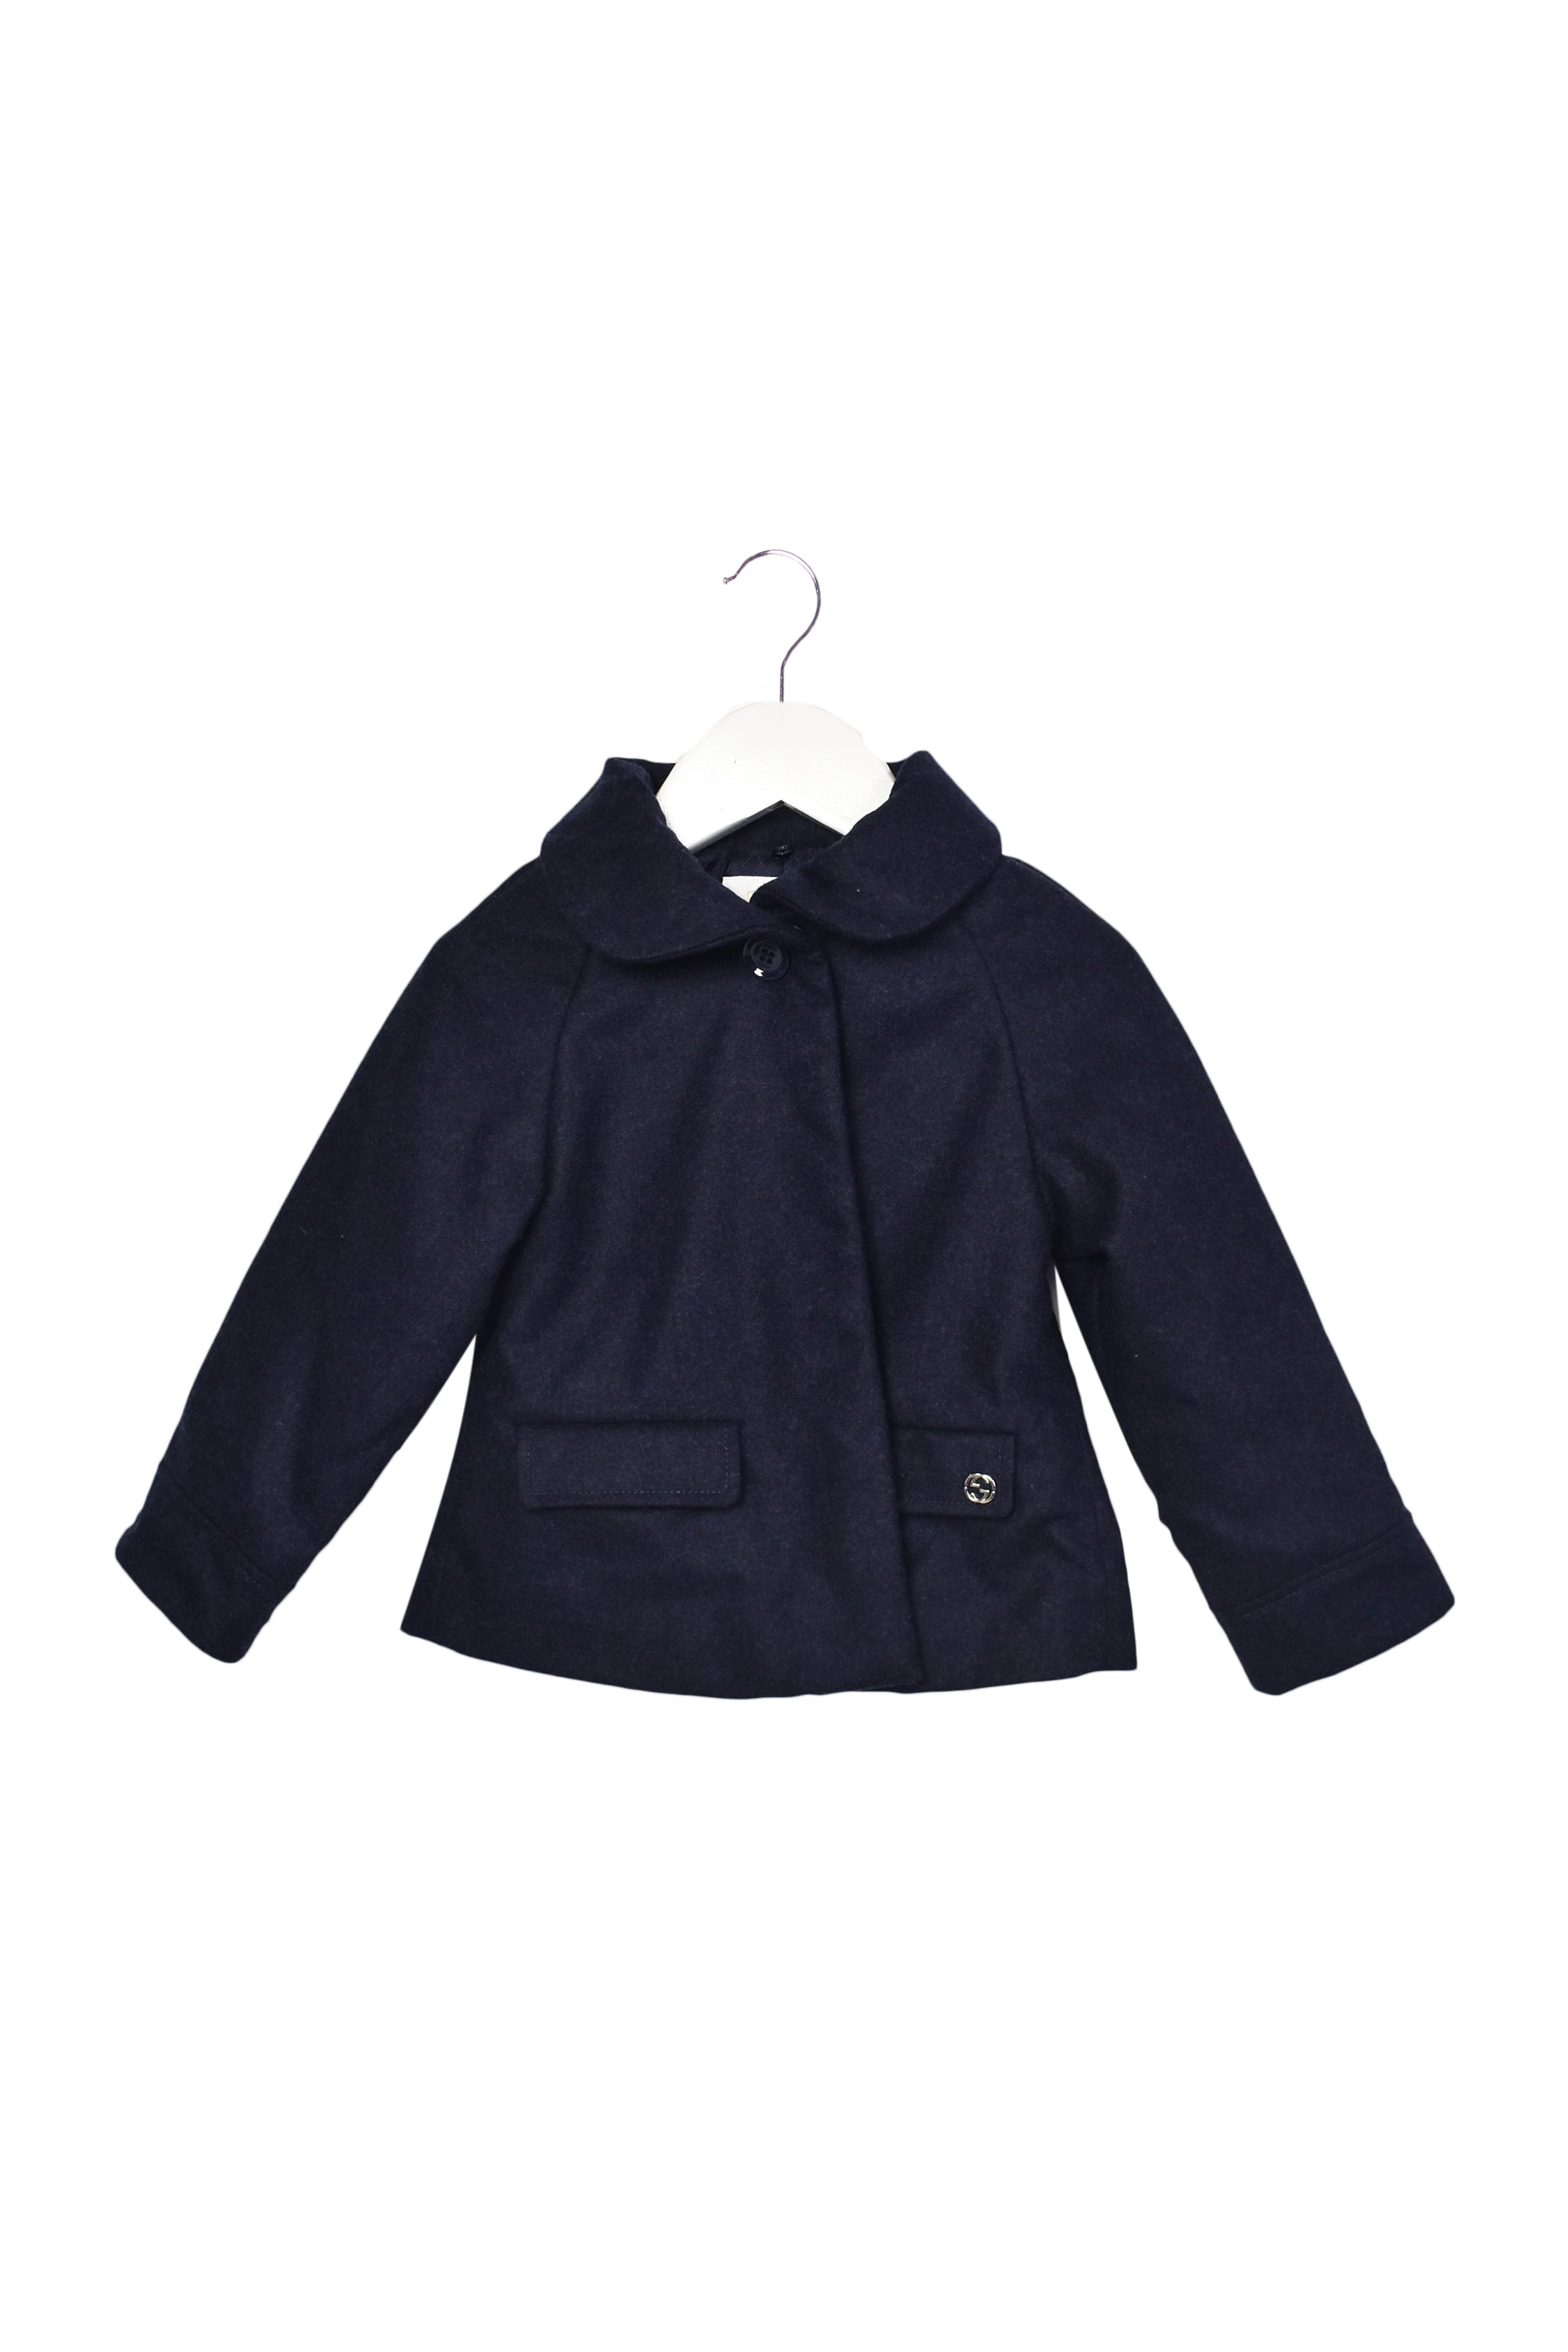 6906341ae 10014021 Gucci Baby ~ Jacket 18-24M at Retykle